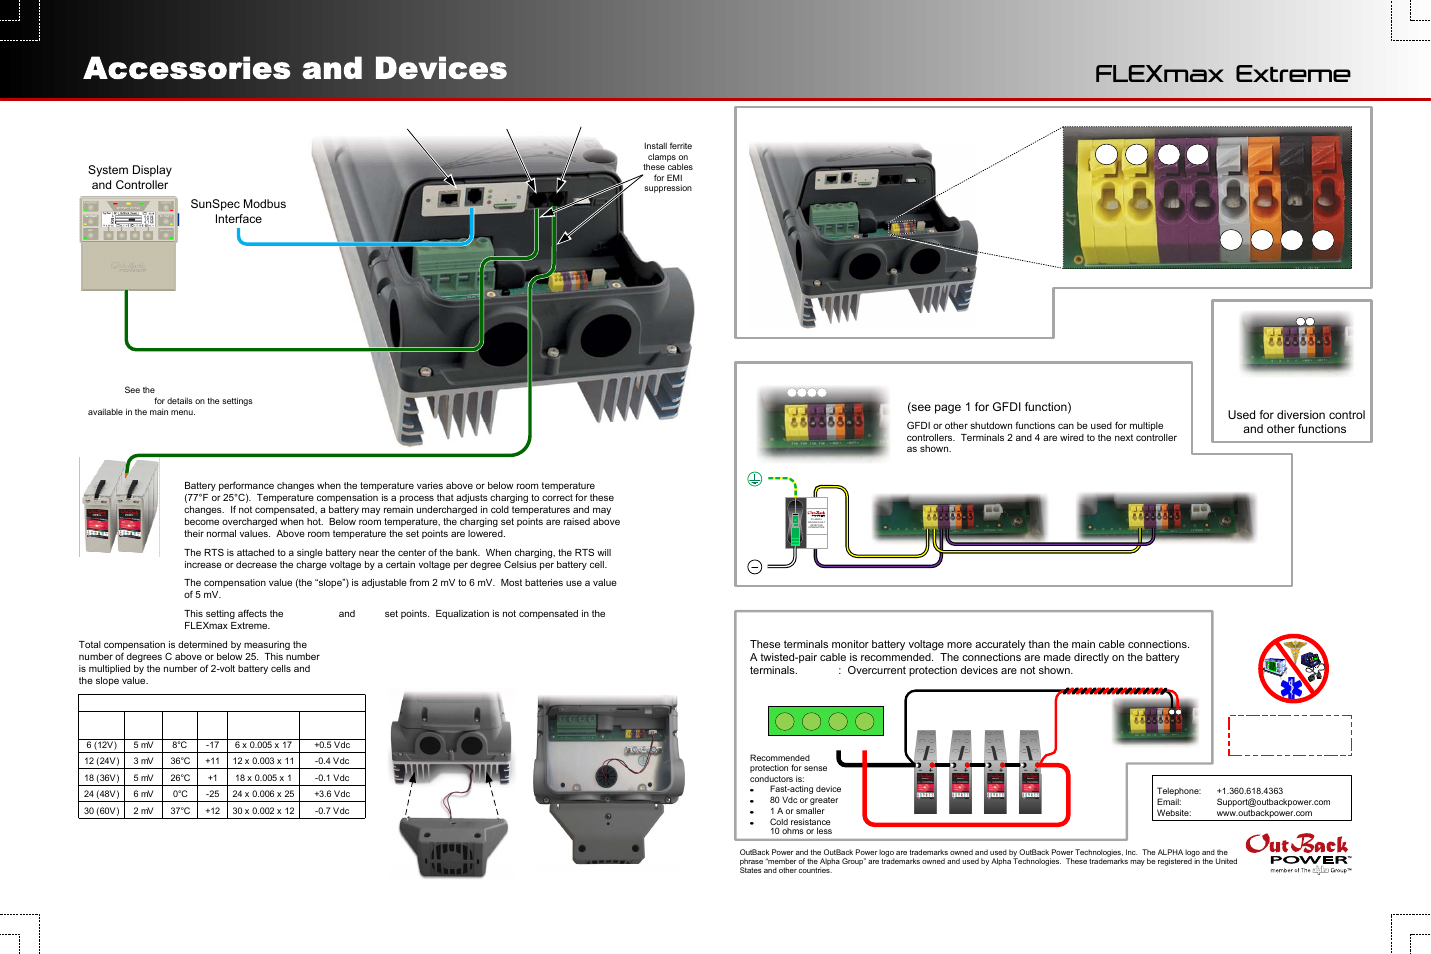 Flexmax Extreme Accessory Terminal Block Ports And Connectors Array Connected To Port 1 Interrupter 3 Mate3 System Display Controller Outback Power Systems Quick Start